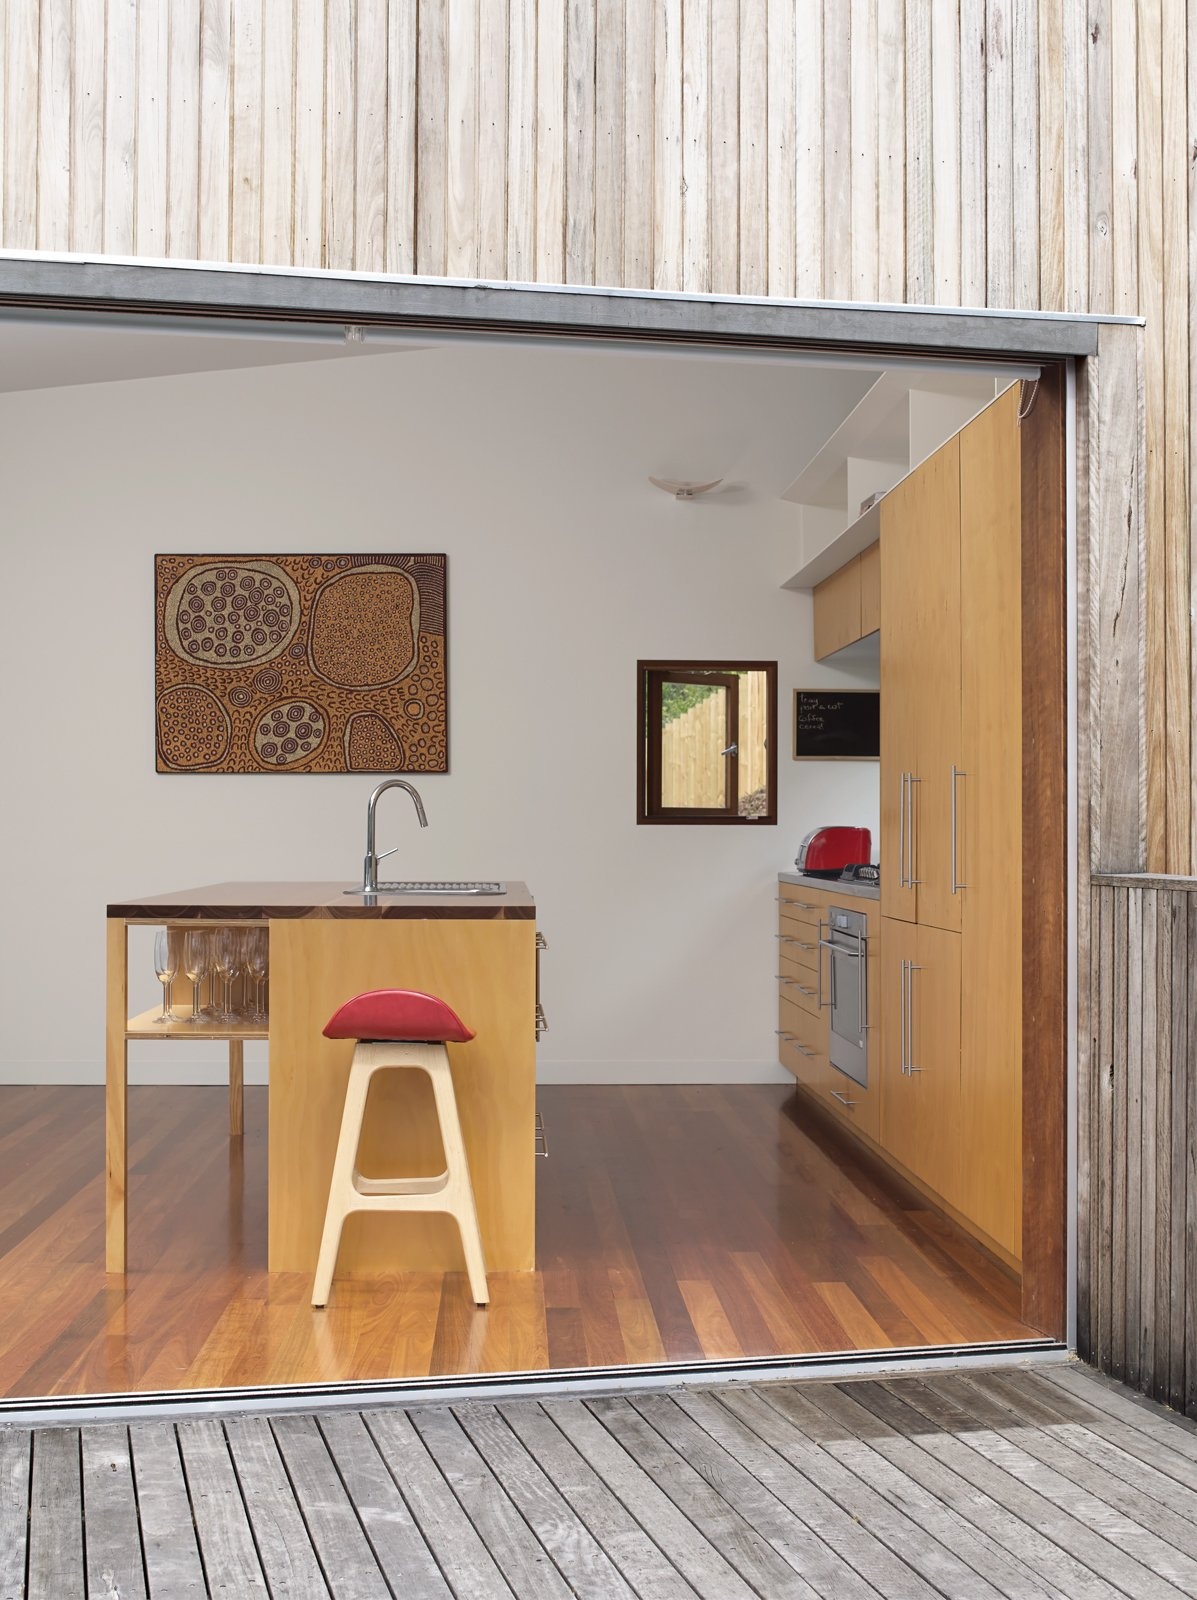 A painting by Aboriginal artist Yinarupa Gibson Nangala hangs in the kitchen, with a barstool from Danish designer Erik Buch in the foreground.  Photo 2 of 10 in Pedigree Charted